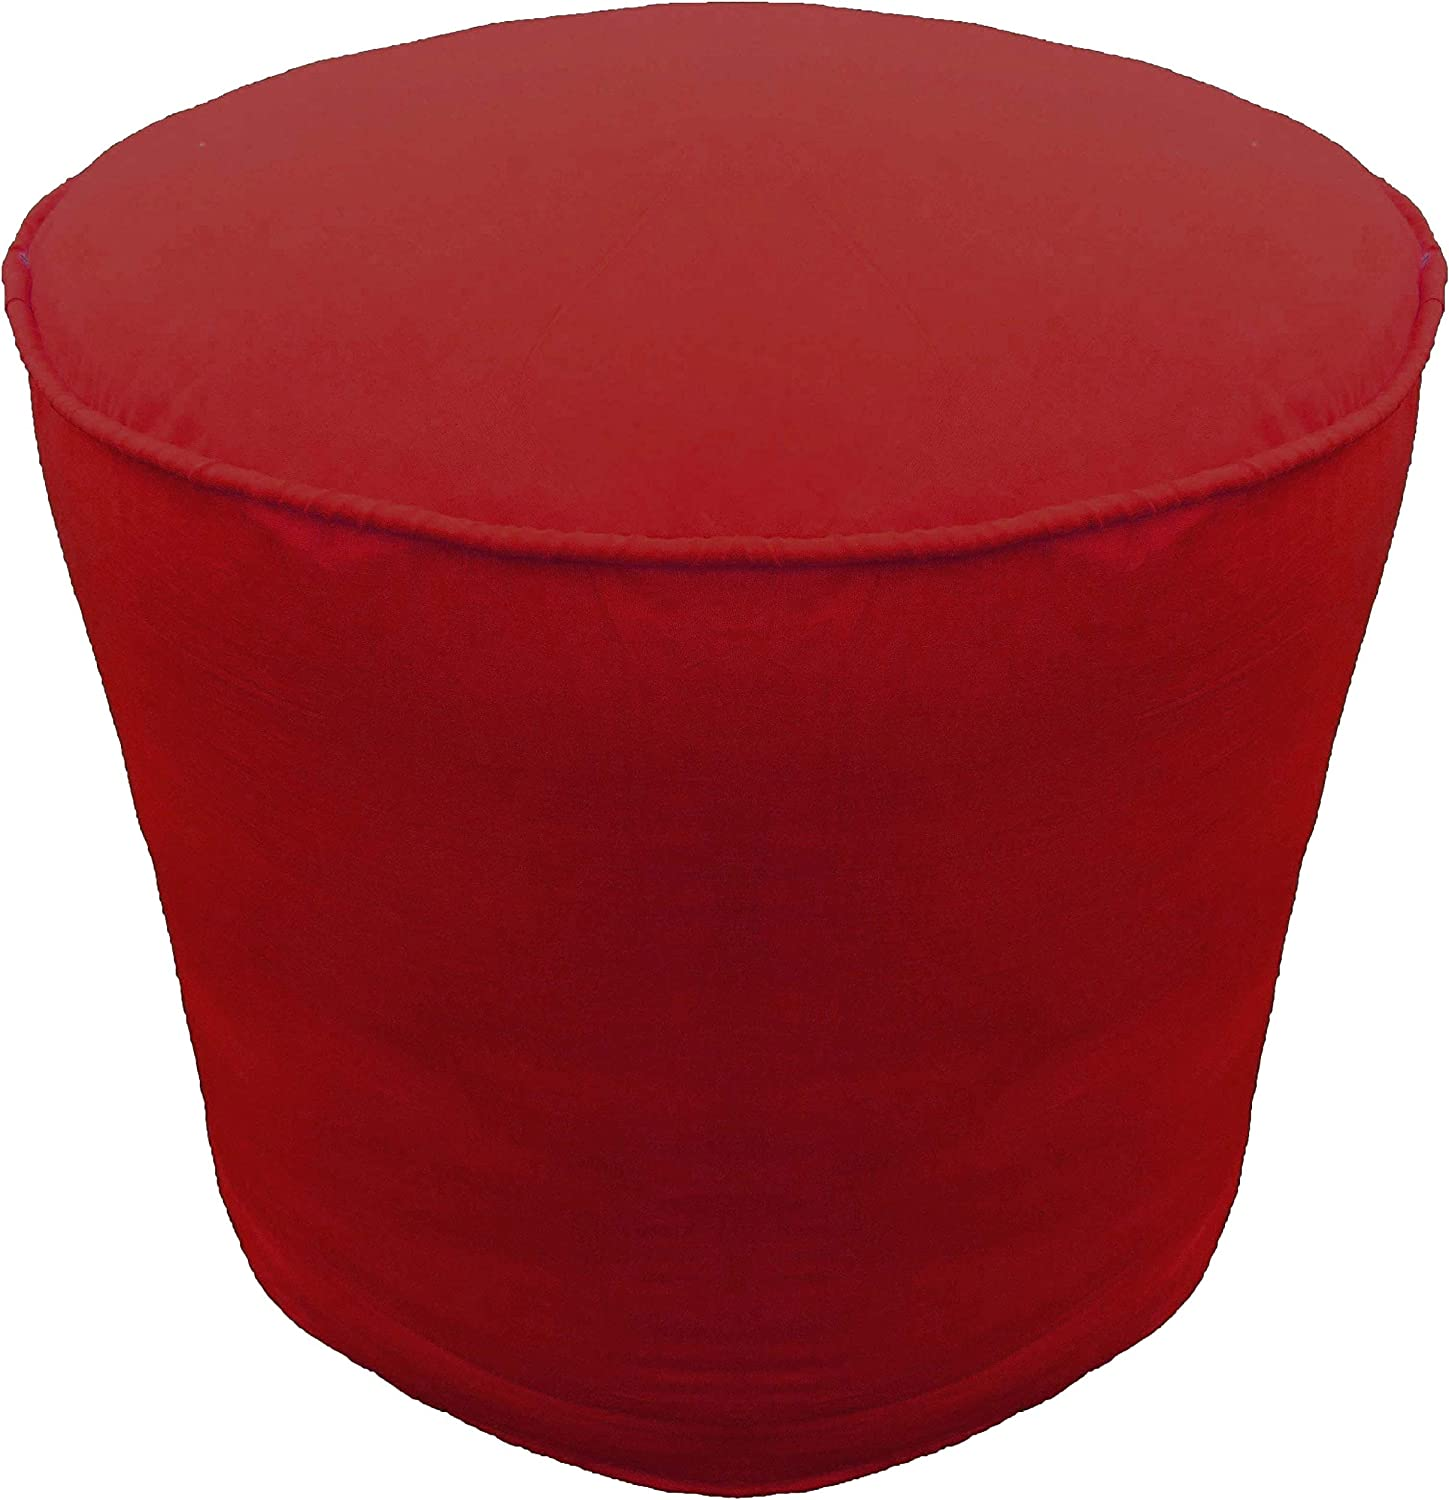 Pouf Cover with Manufacturer regenerated product Piping Round Footstool Columbus Mall Burg Ottoman Cotton